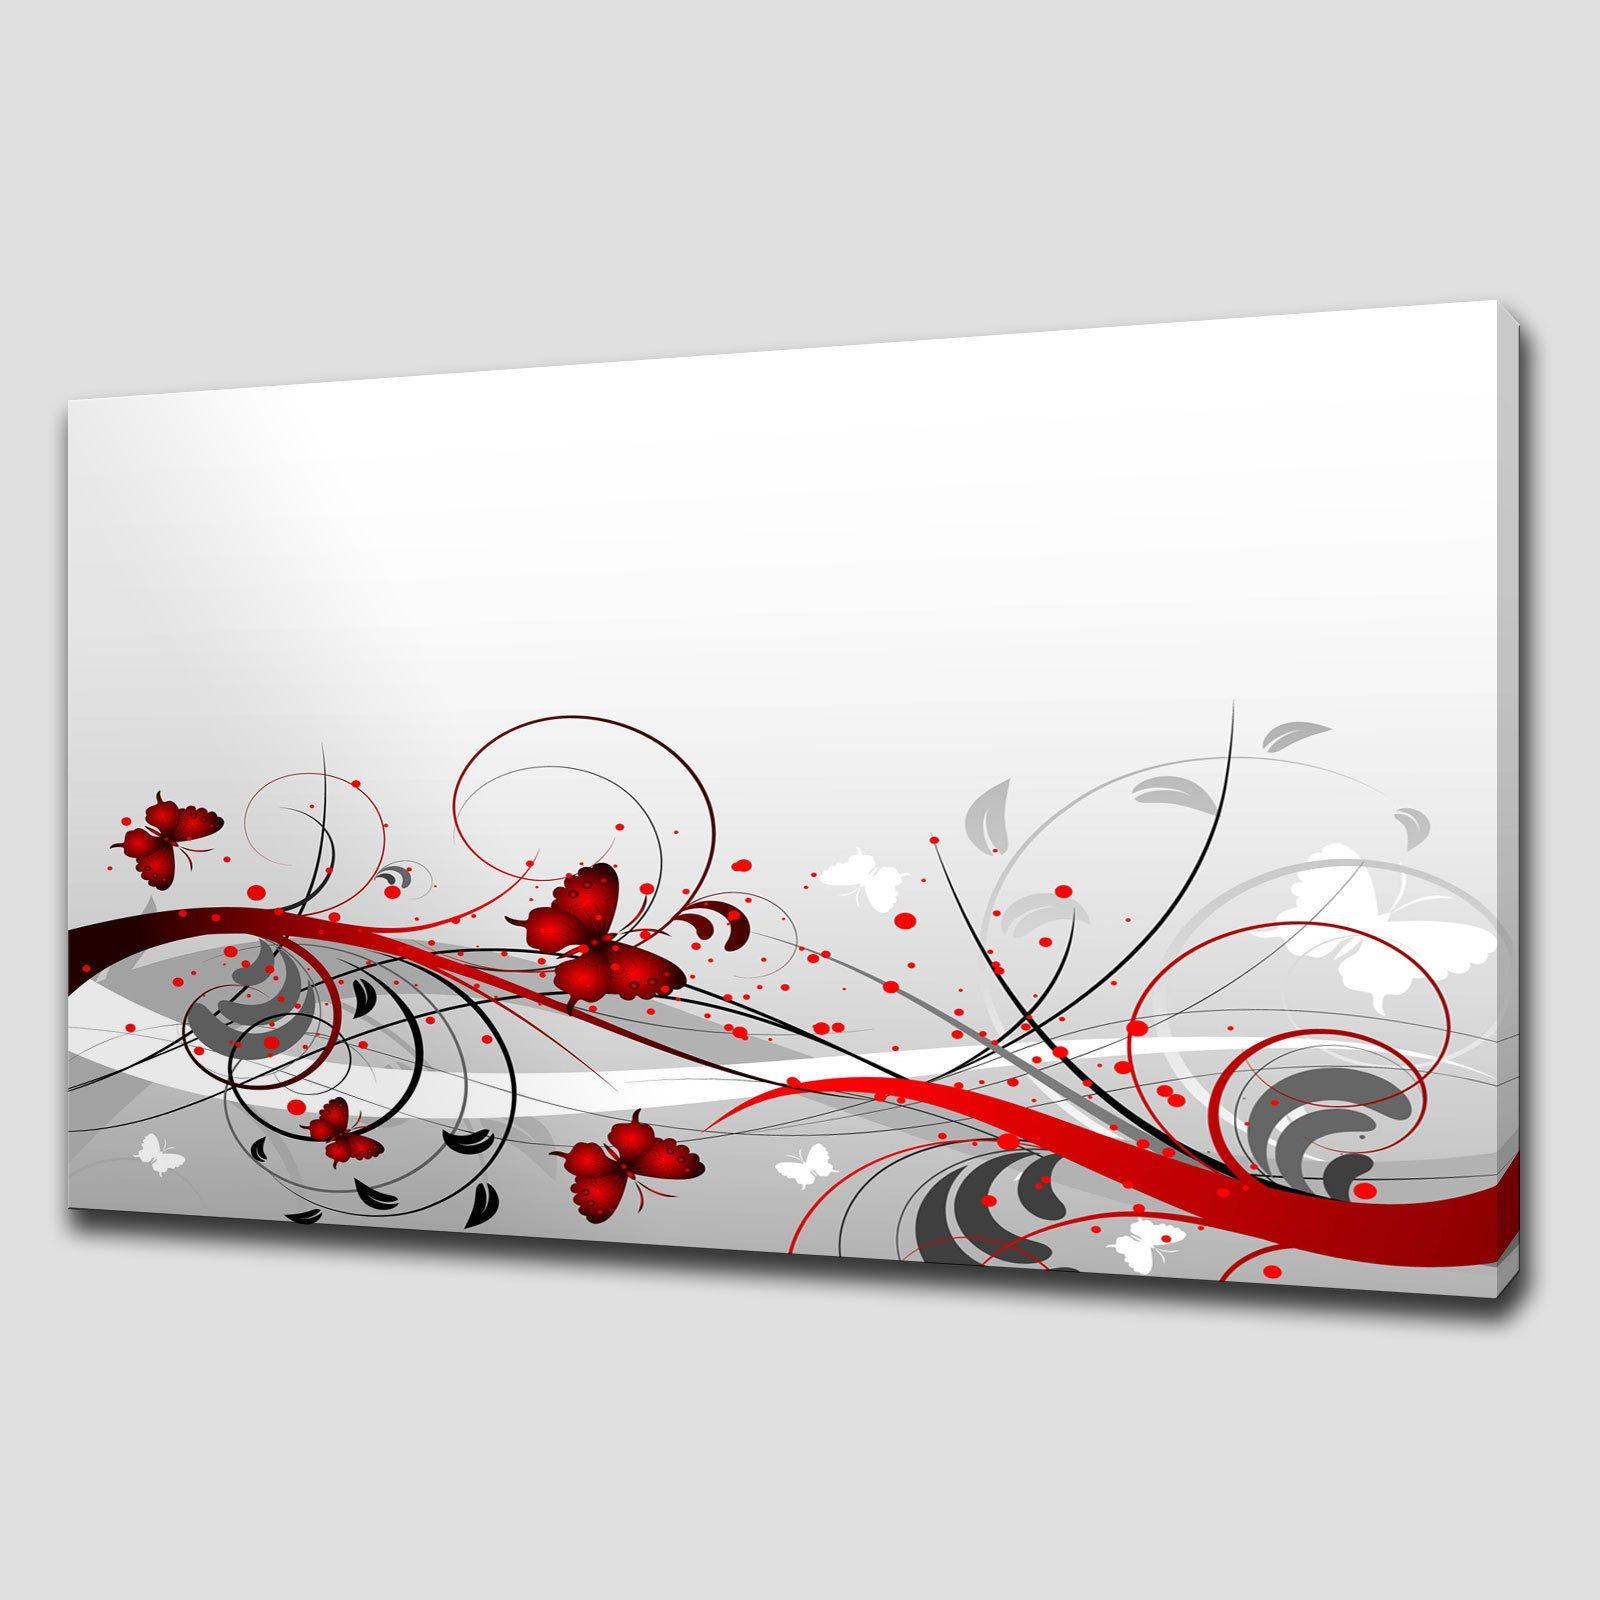 Wall Art Canvas Red : Red abstract foliage large canvas wall art picture print